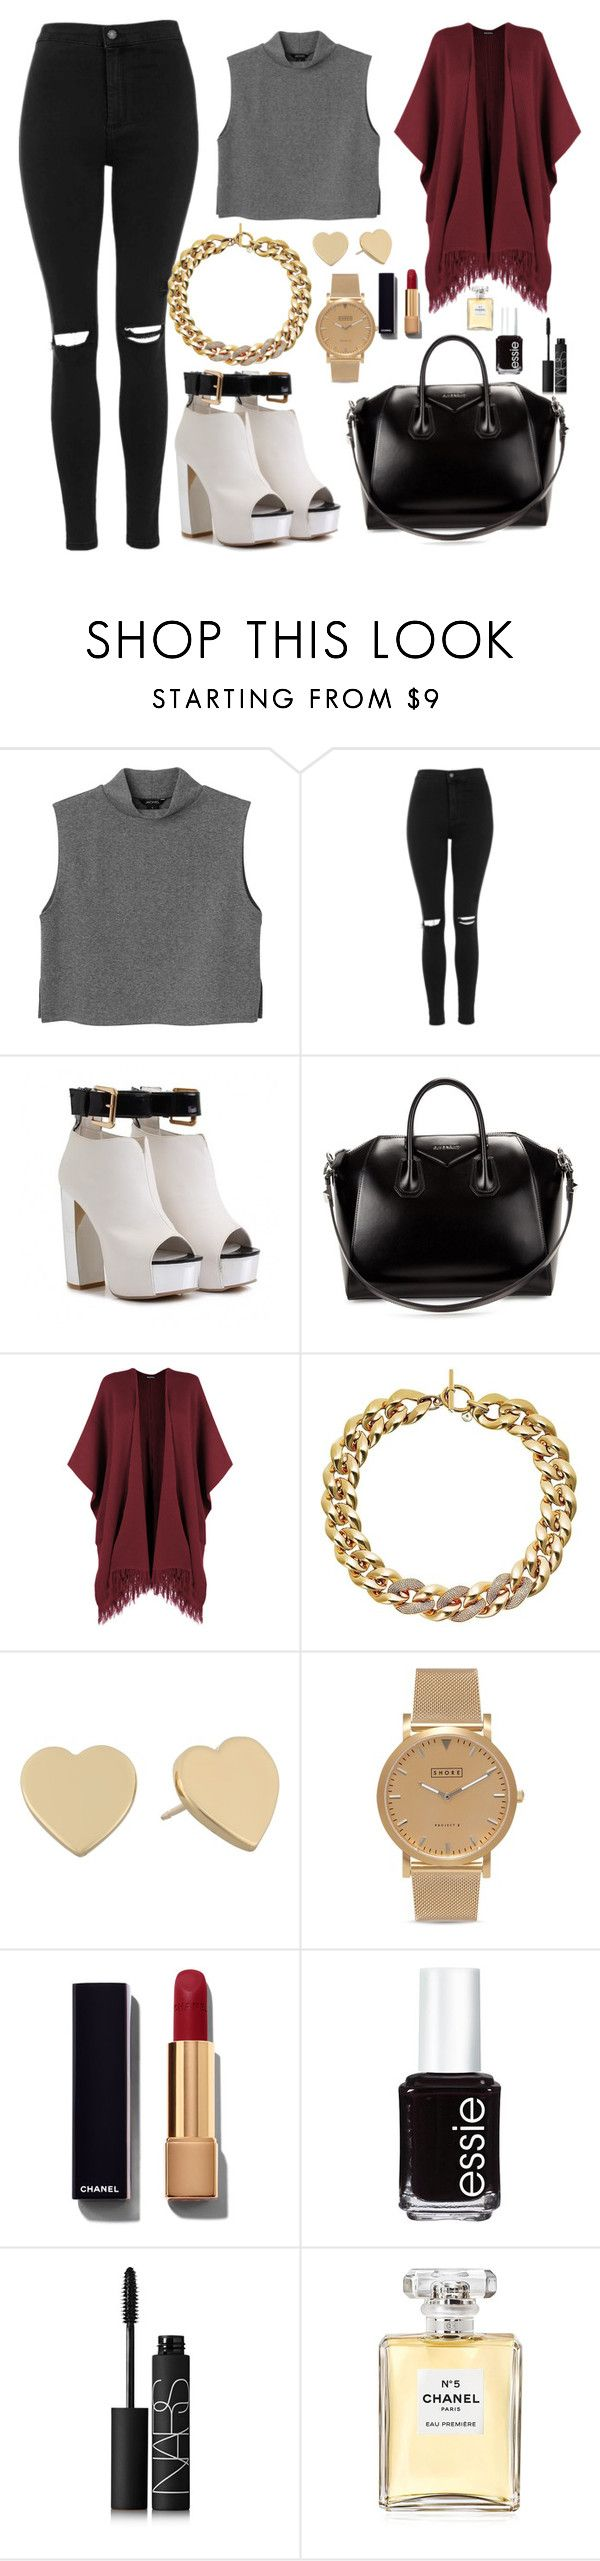 """""""Untitled #163"""" by marr-neubauerova on Polyvore featuring Monki, Topshop, Givenchy, WearAll, Michael Kors, Kate Spade, Shore Projects, Chanel, Essie and NARS Cosmetics"""